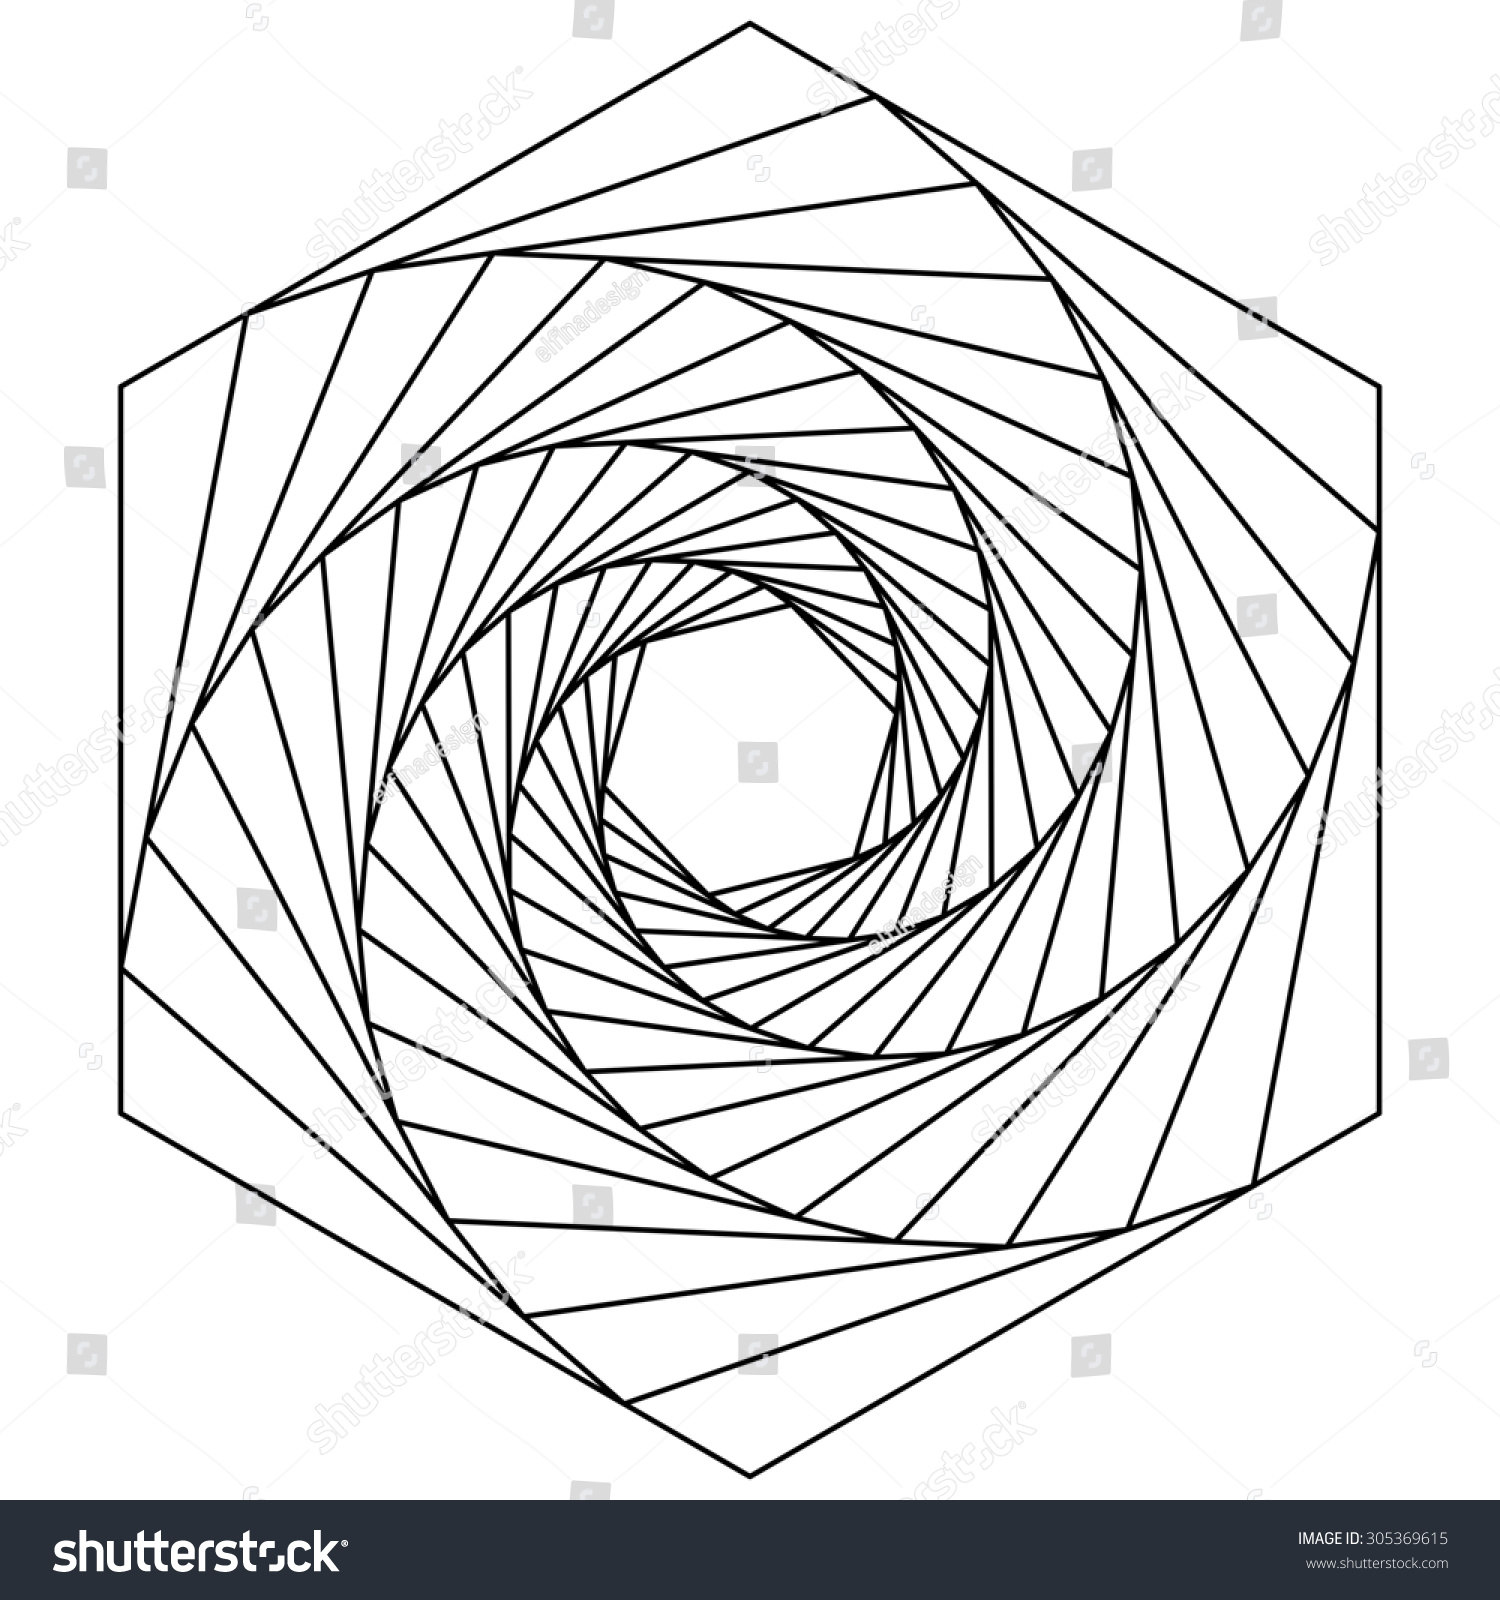 Line Art Vector : Hexagon spiral line drawing logo design stock vector